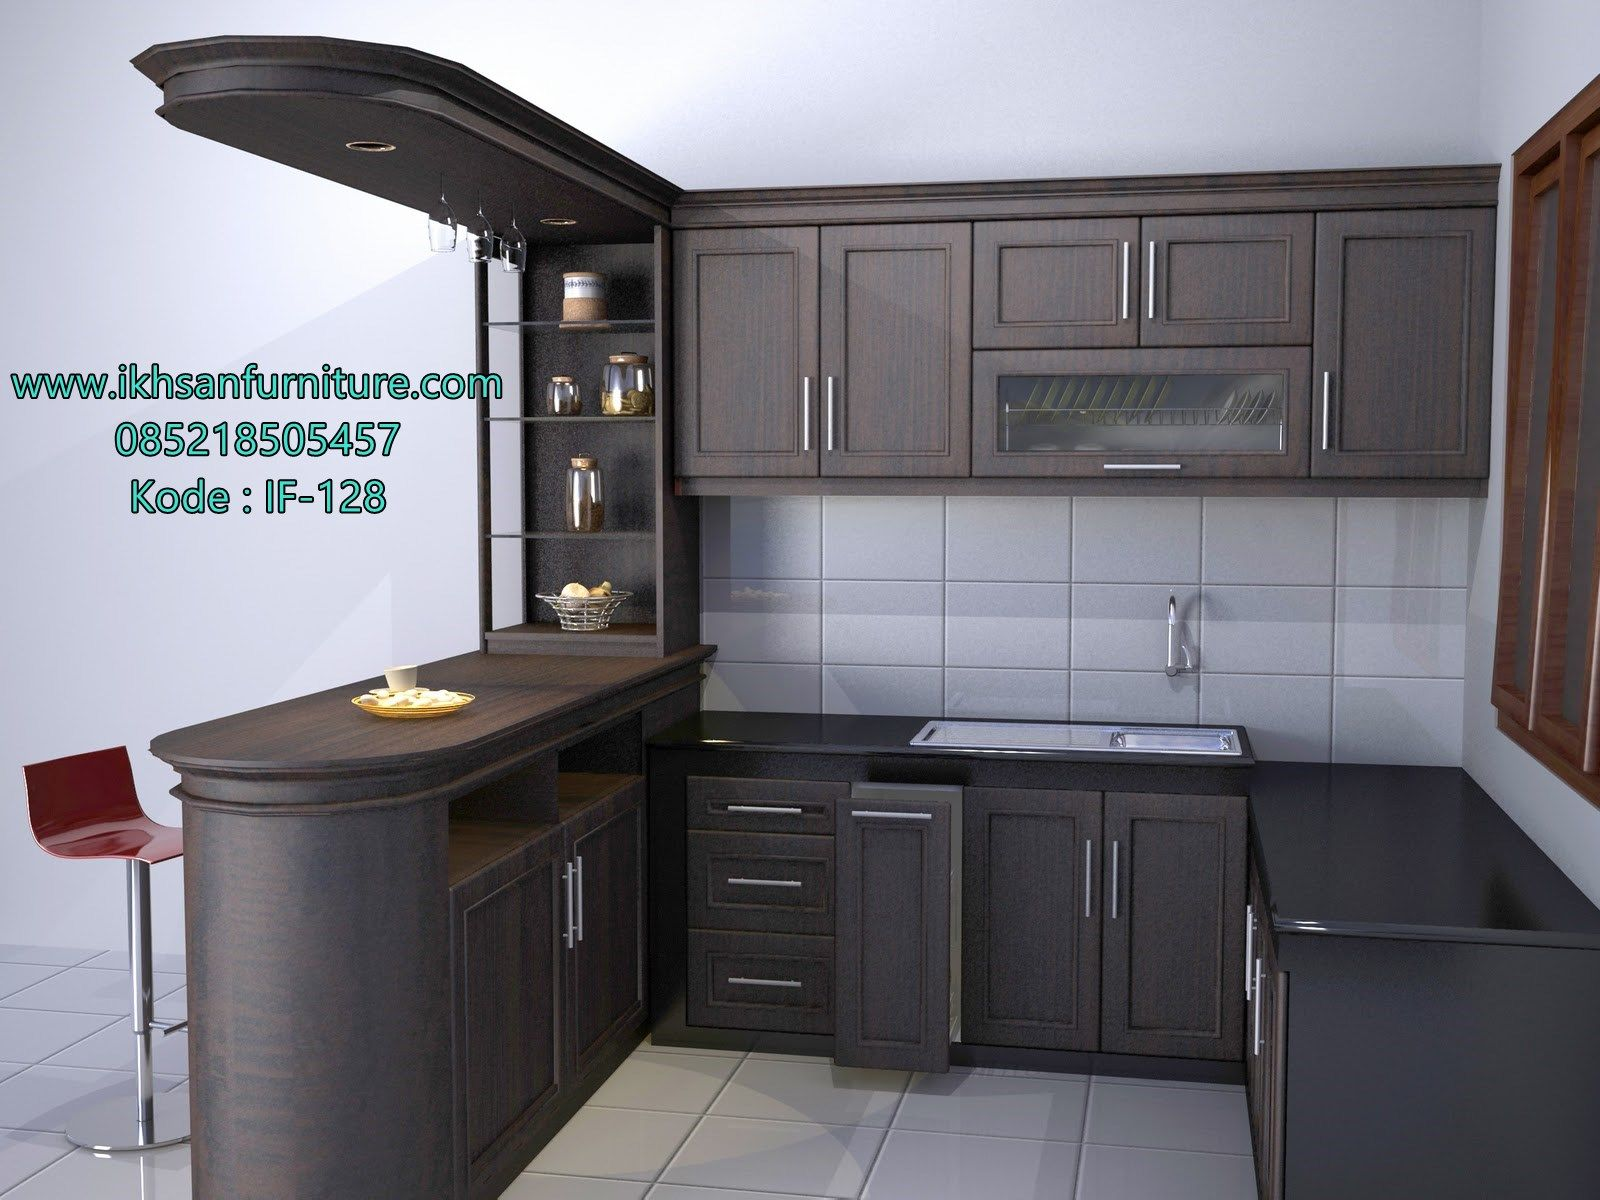 Jual Kitchen Set Minimalis Elegan Model Kitchen Set